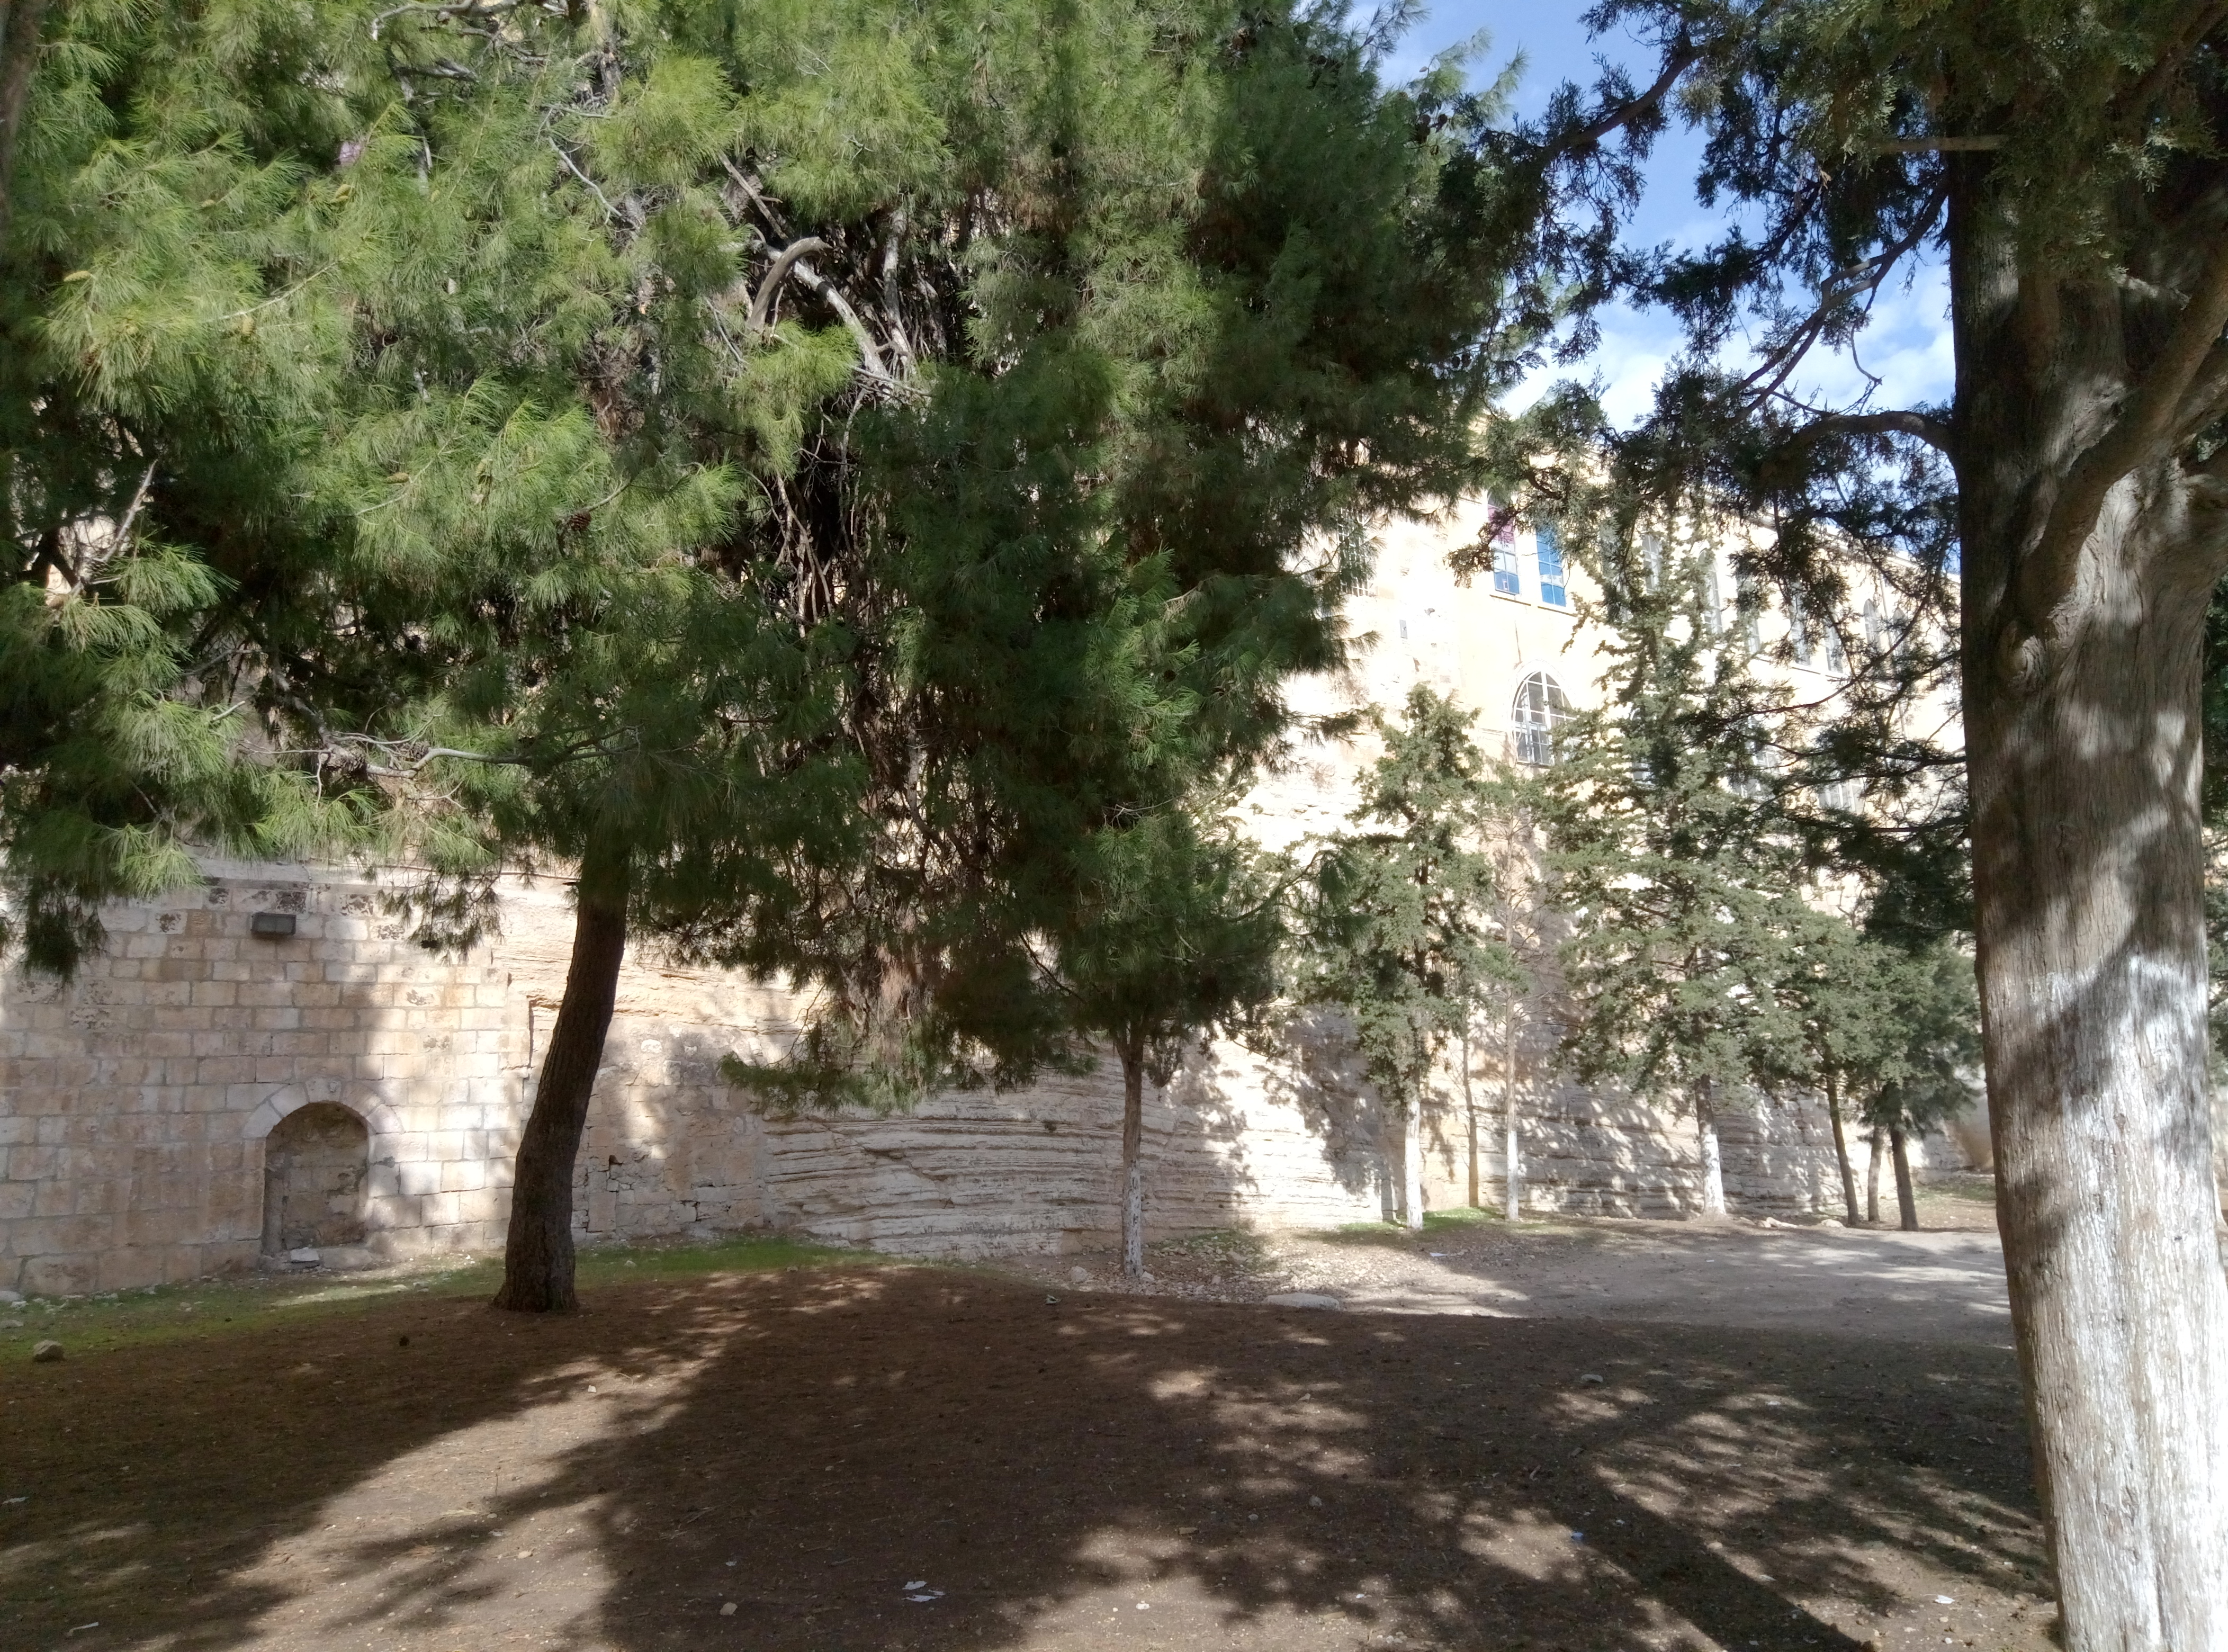 Bedrock in the Temple Mount wall